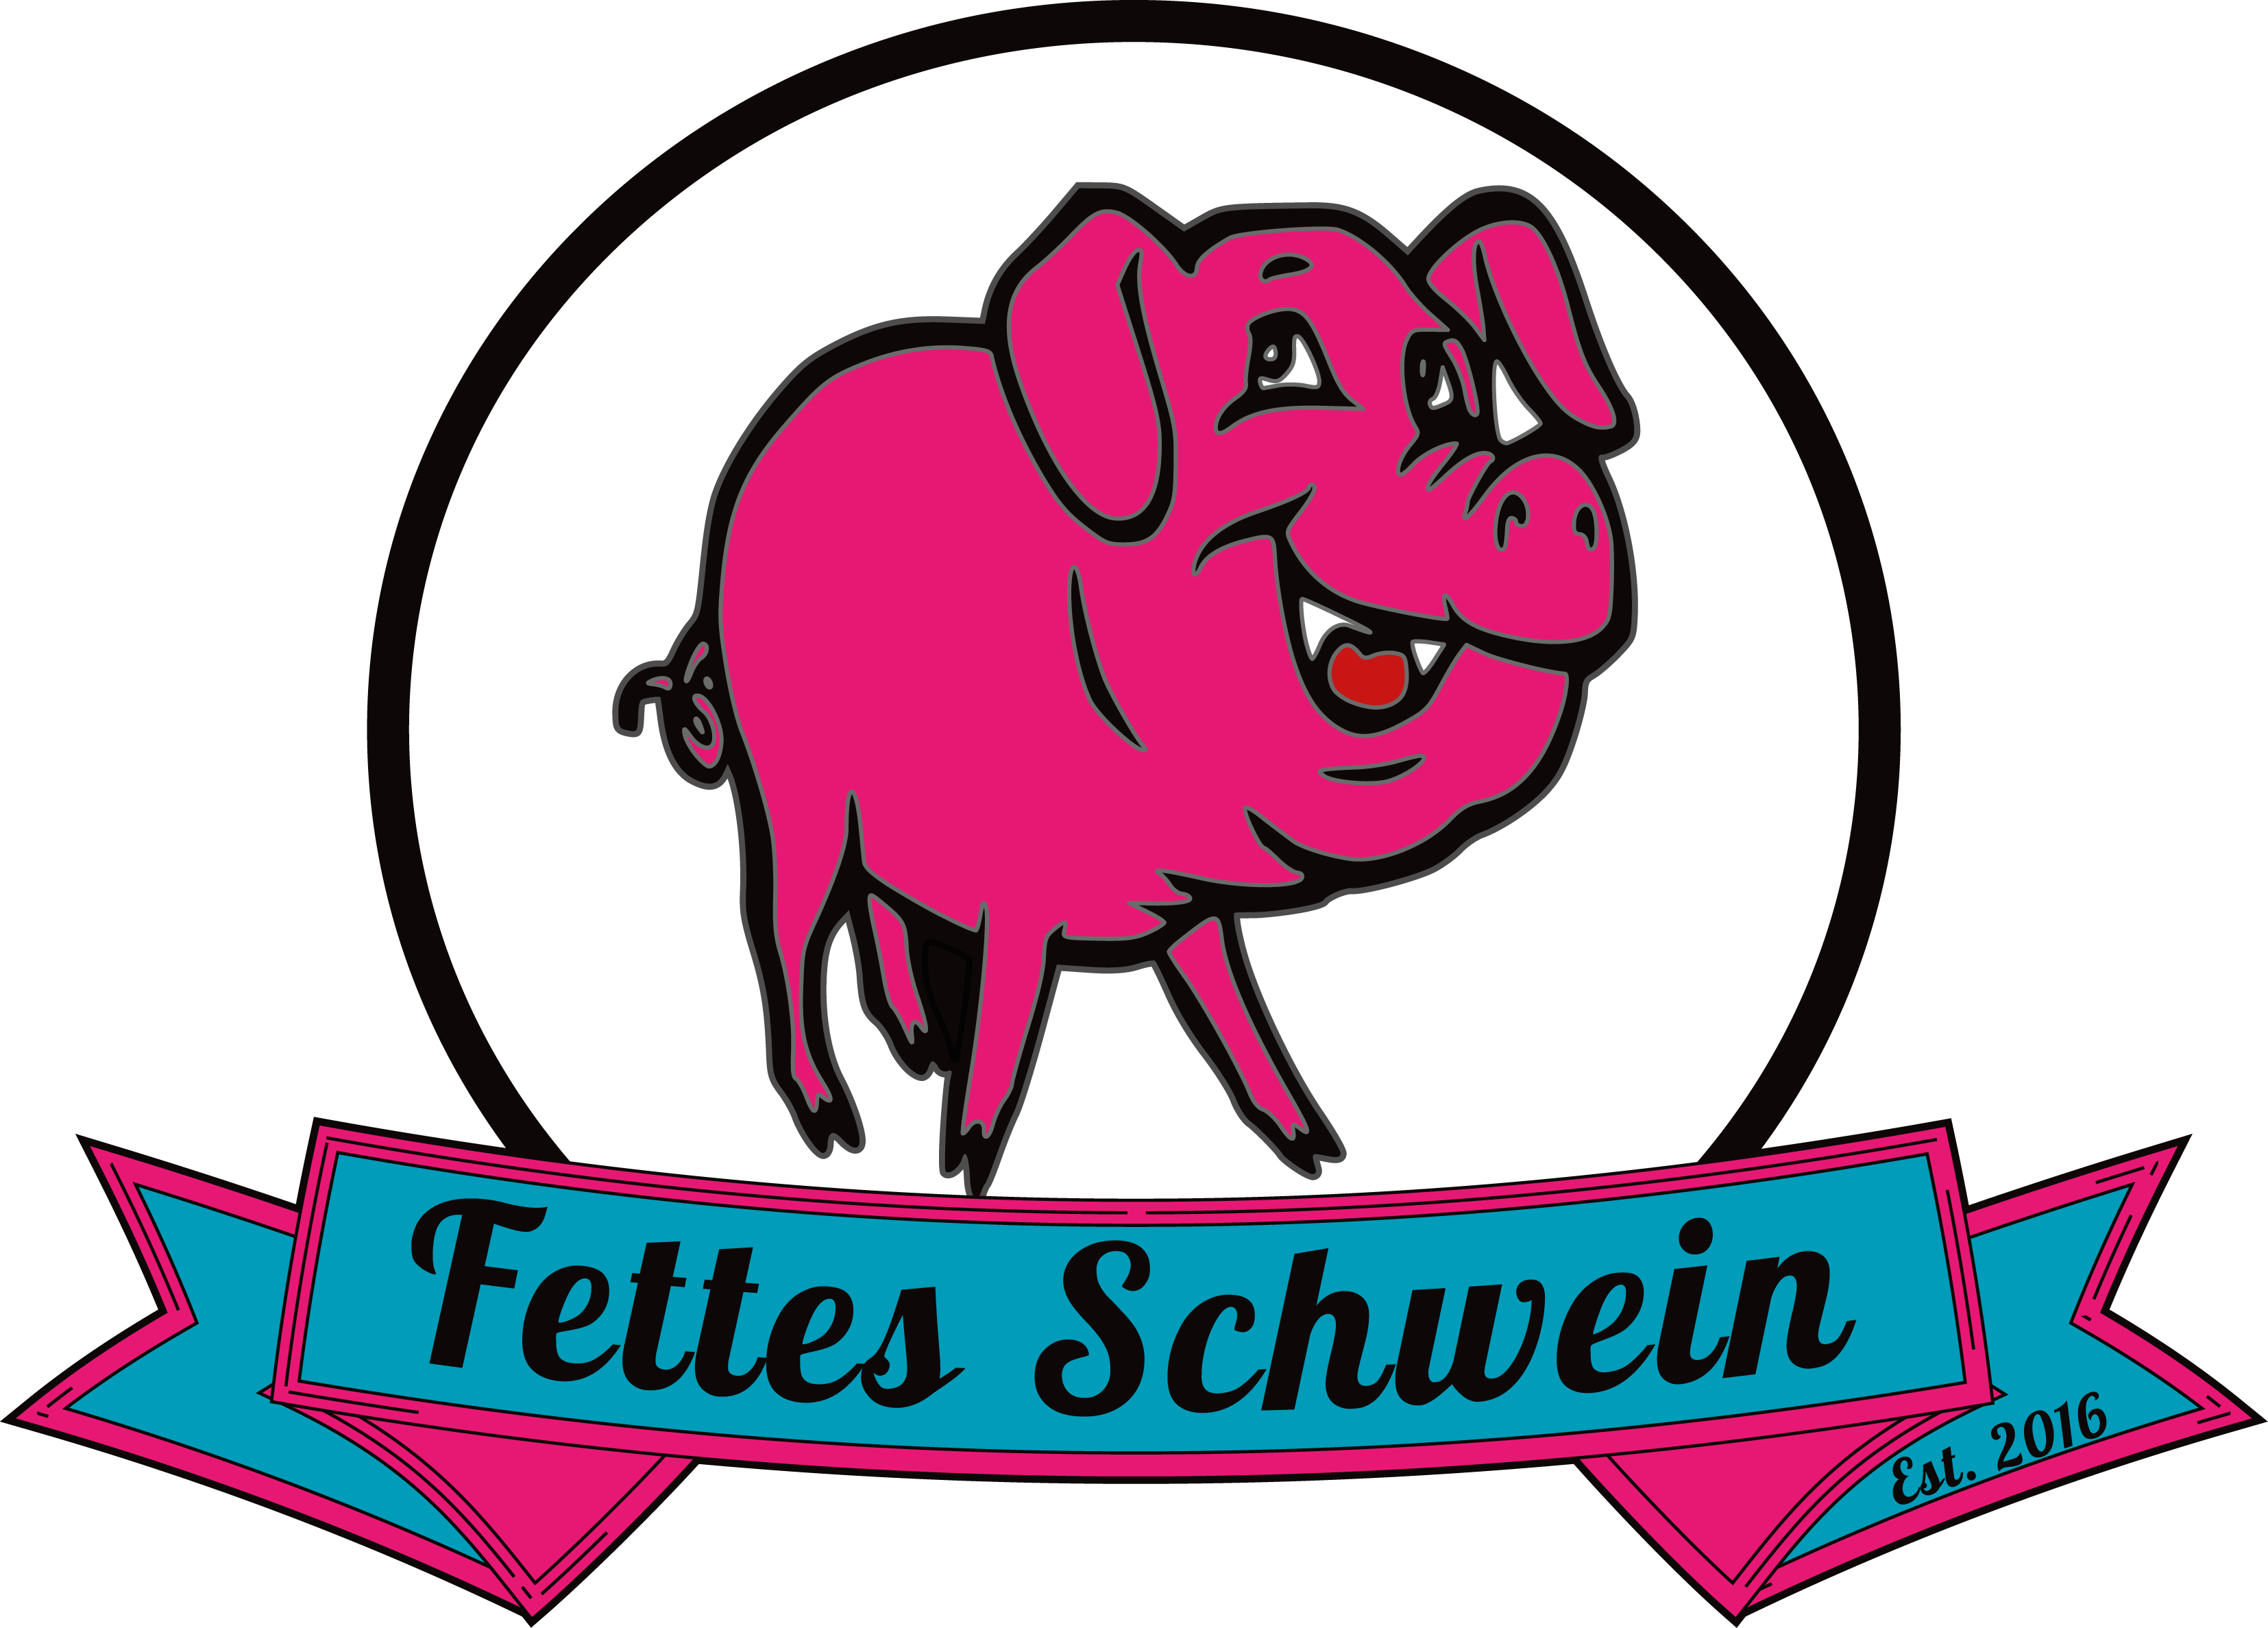 Catering clipart food served. Fettes schwein truck in